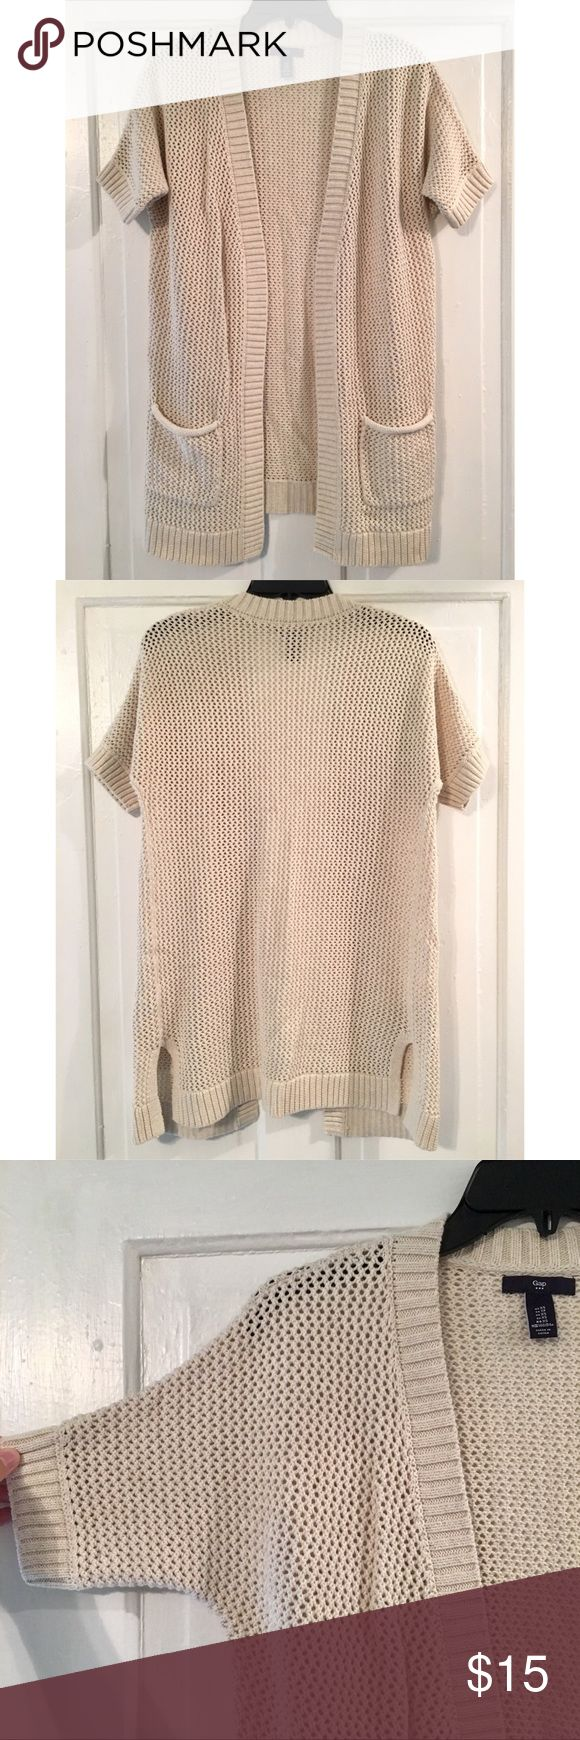 🎉Christmas Sale!🎉 Gap Short Sleeve Cardigan 🎉🎁🎄CHRISTMAS SALE!!🎄🎁🎉  Gap Short Sleeve Tunic Knit Cardigan Size Extra Small (also fits size small) 31 inches long Cream Color Two Front Pockets Excellent Condition!  **Sale ends on January 1st, 2018** GAP Sweaters Cardigans